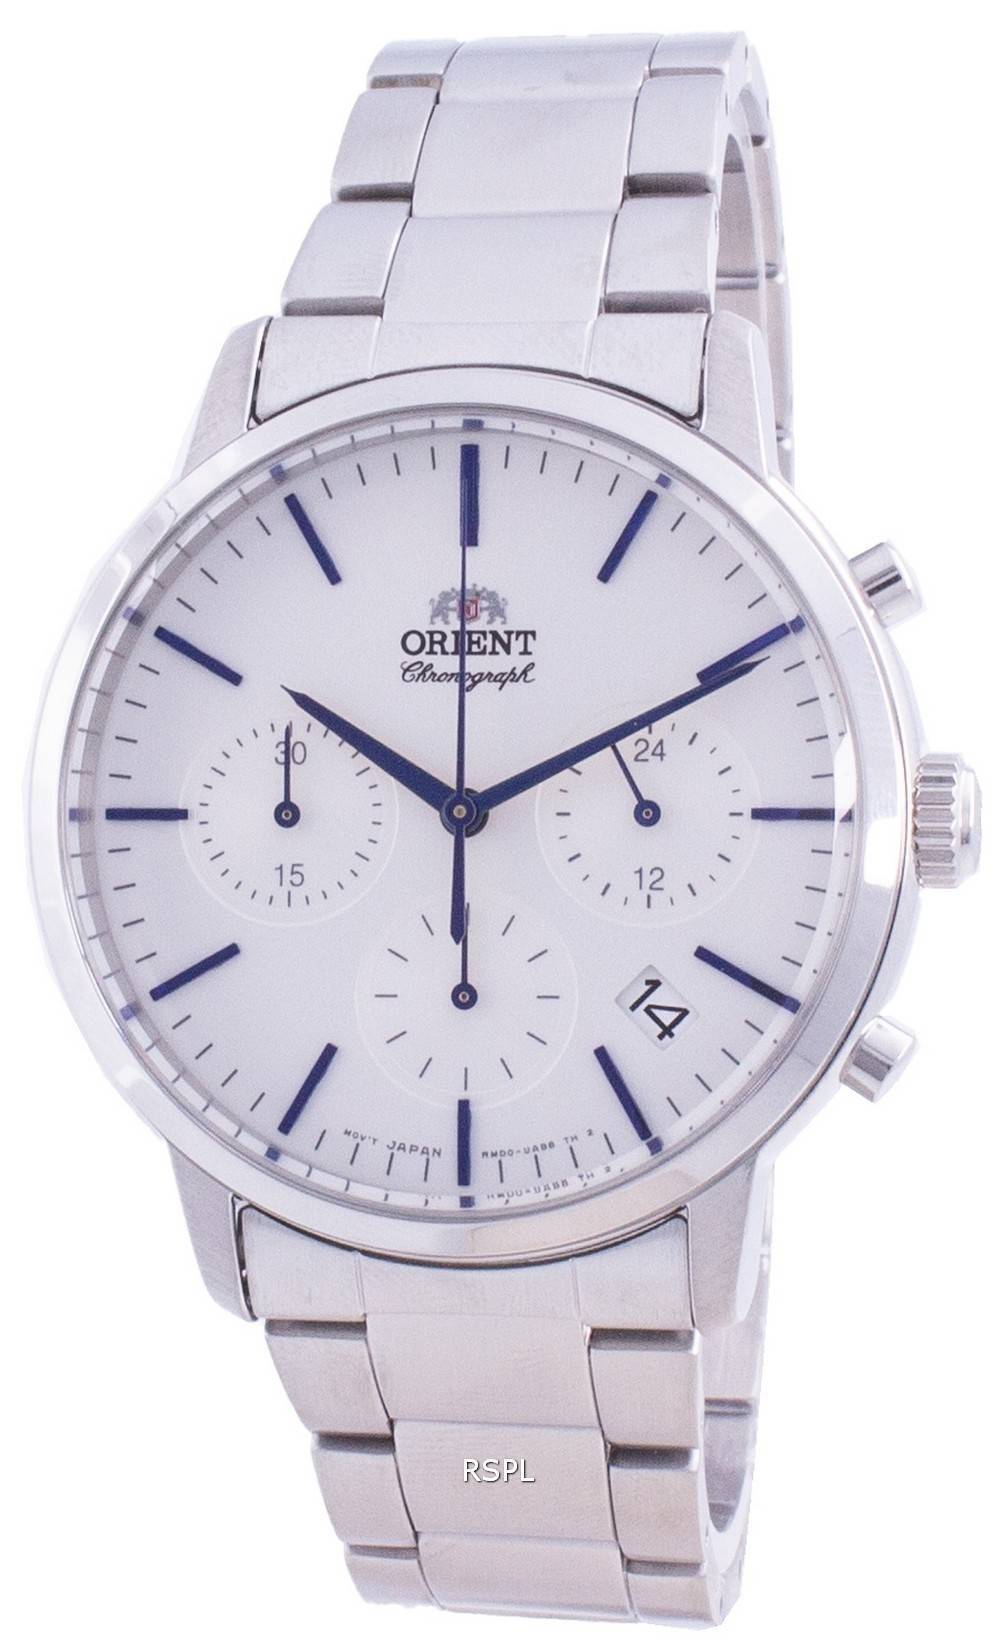 Orient Contemporary Chronograph White Dial Quartz RA-KV0302S10B Men's Watch